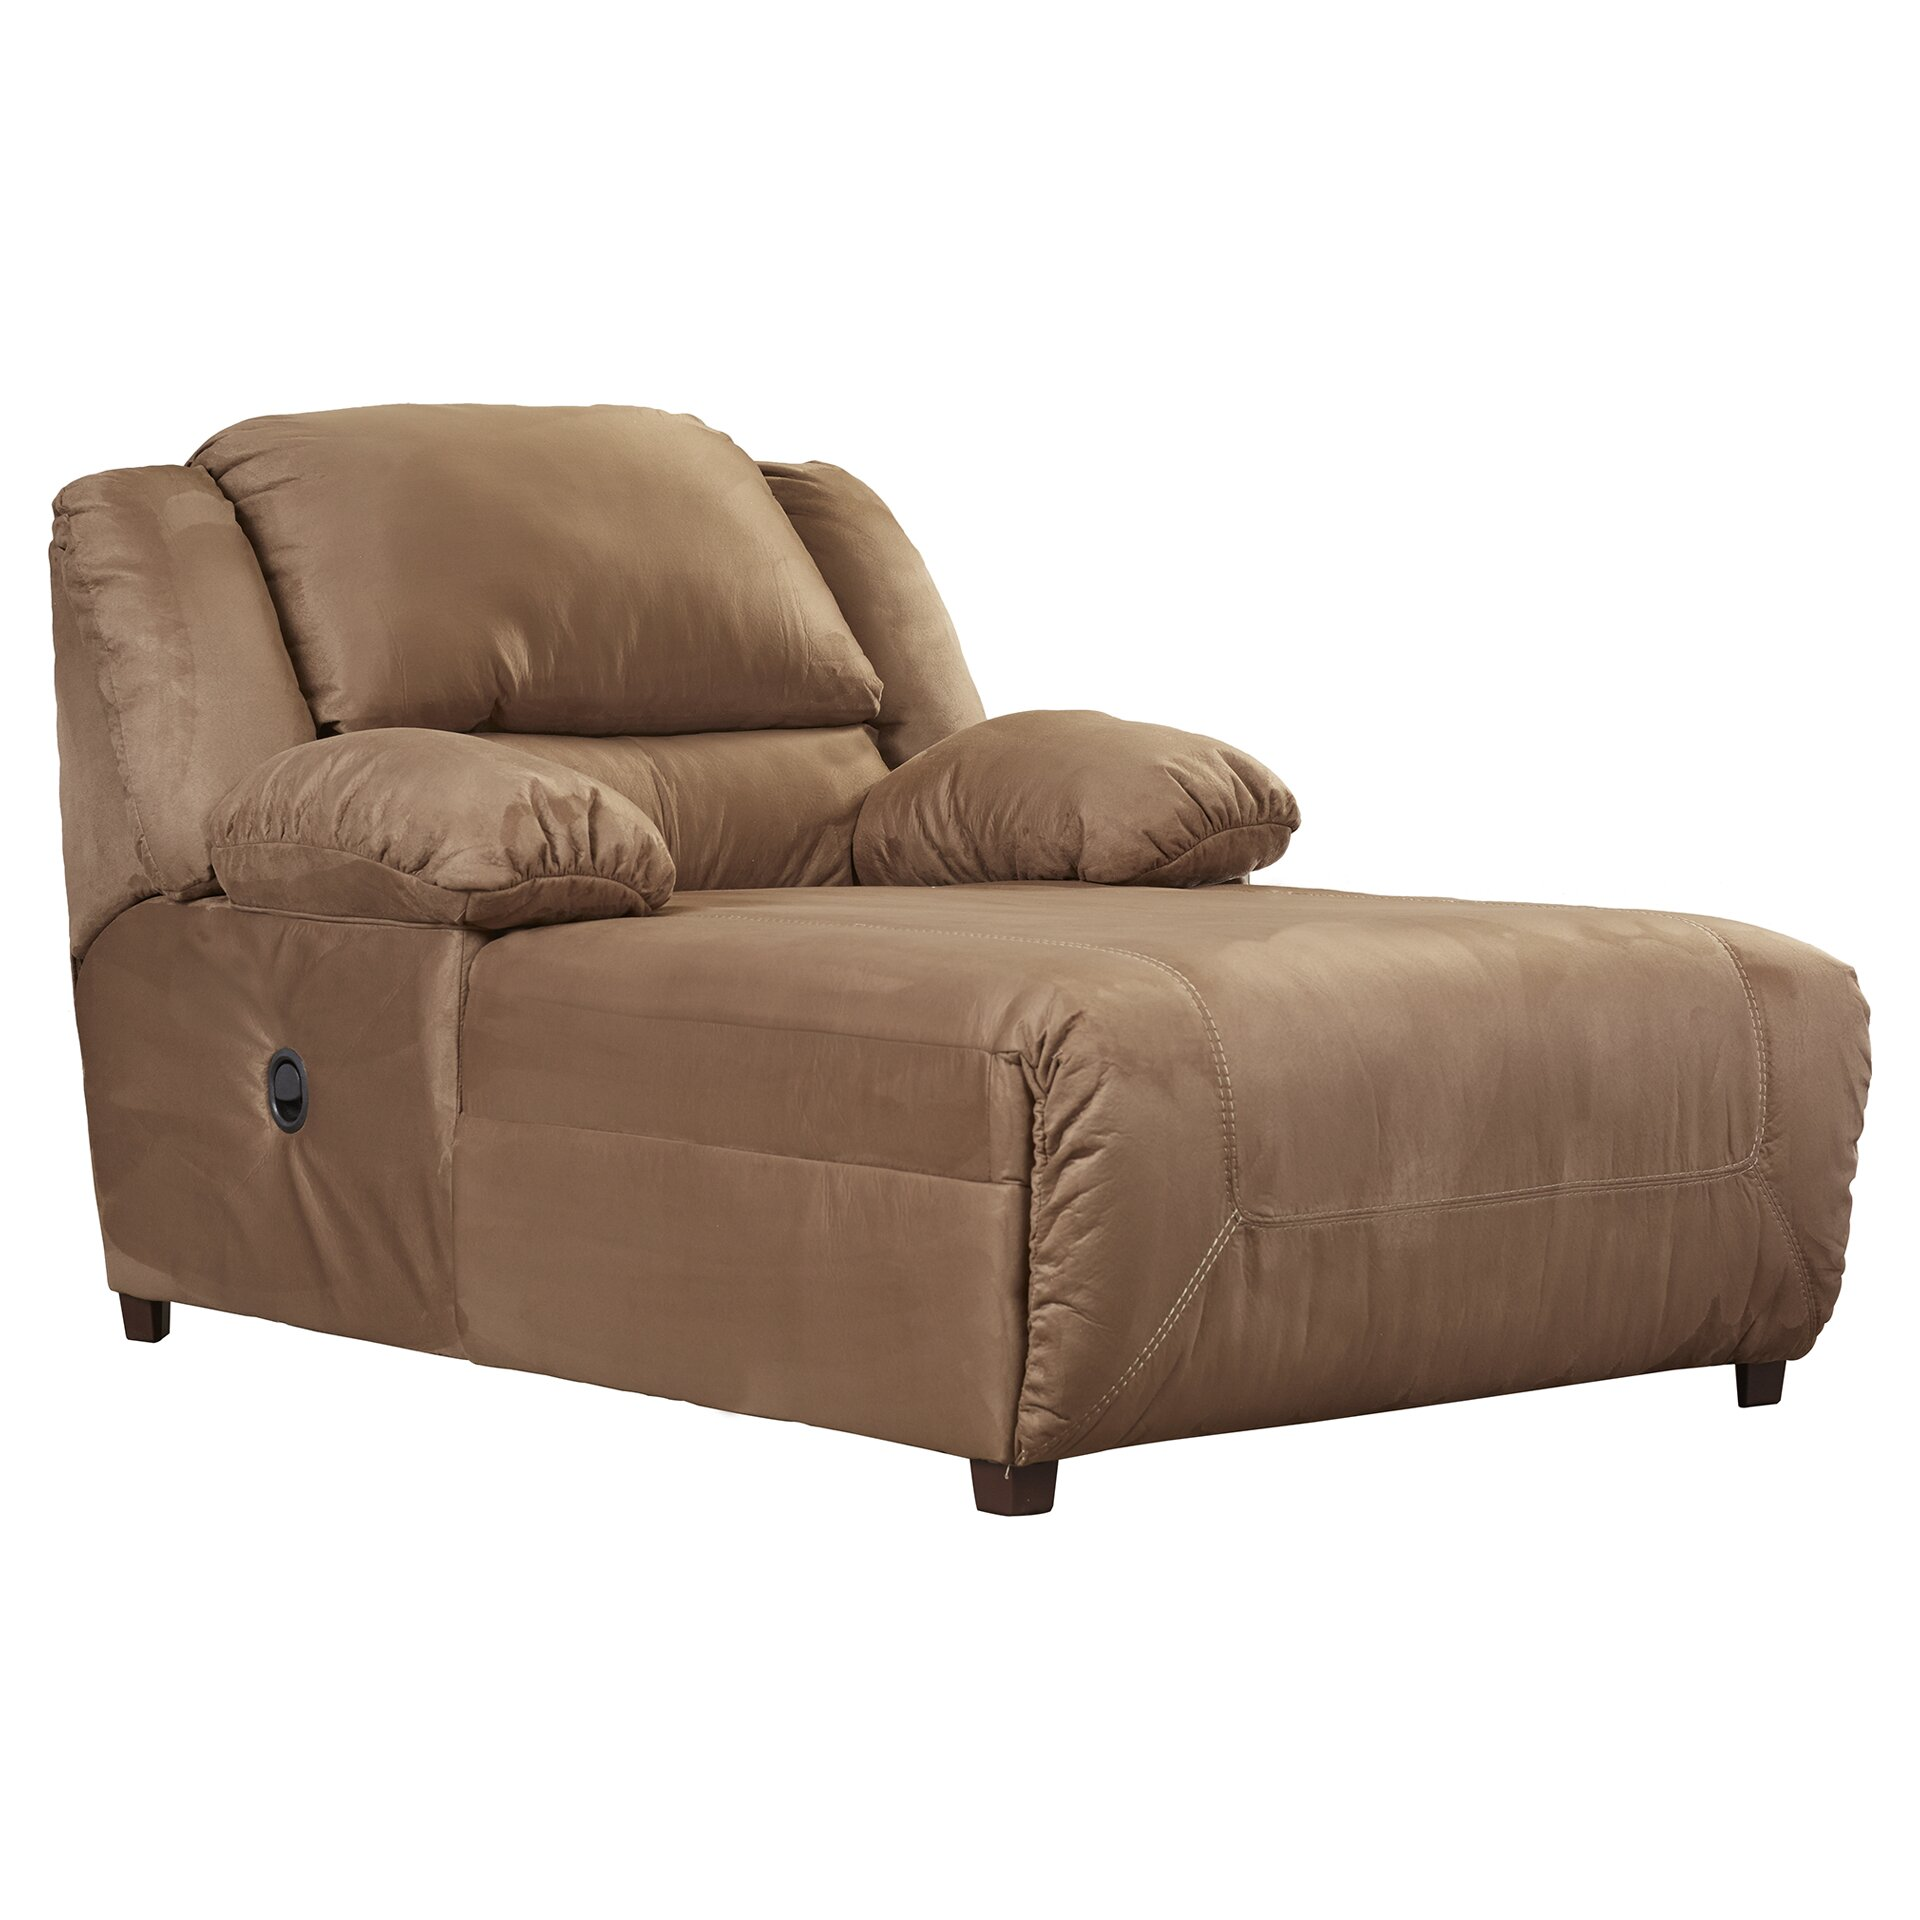 darby home co jimenes microfiber chaise recliner reviews wayfair. Black Bedroom Furniture Sets. Home Design Ideas